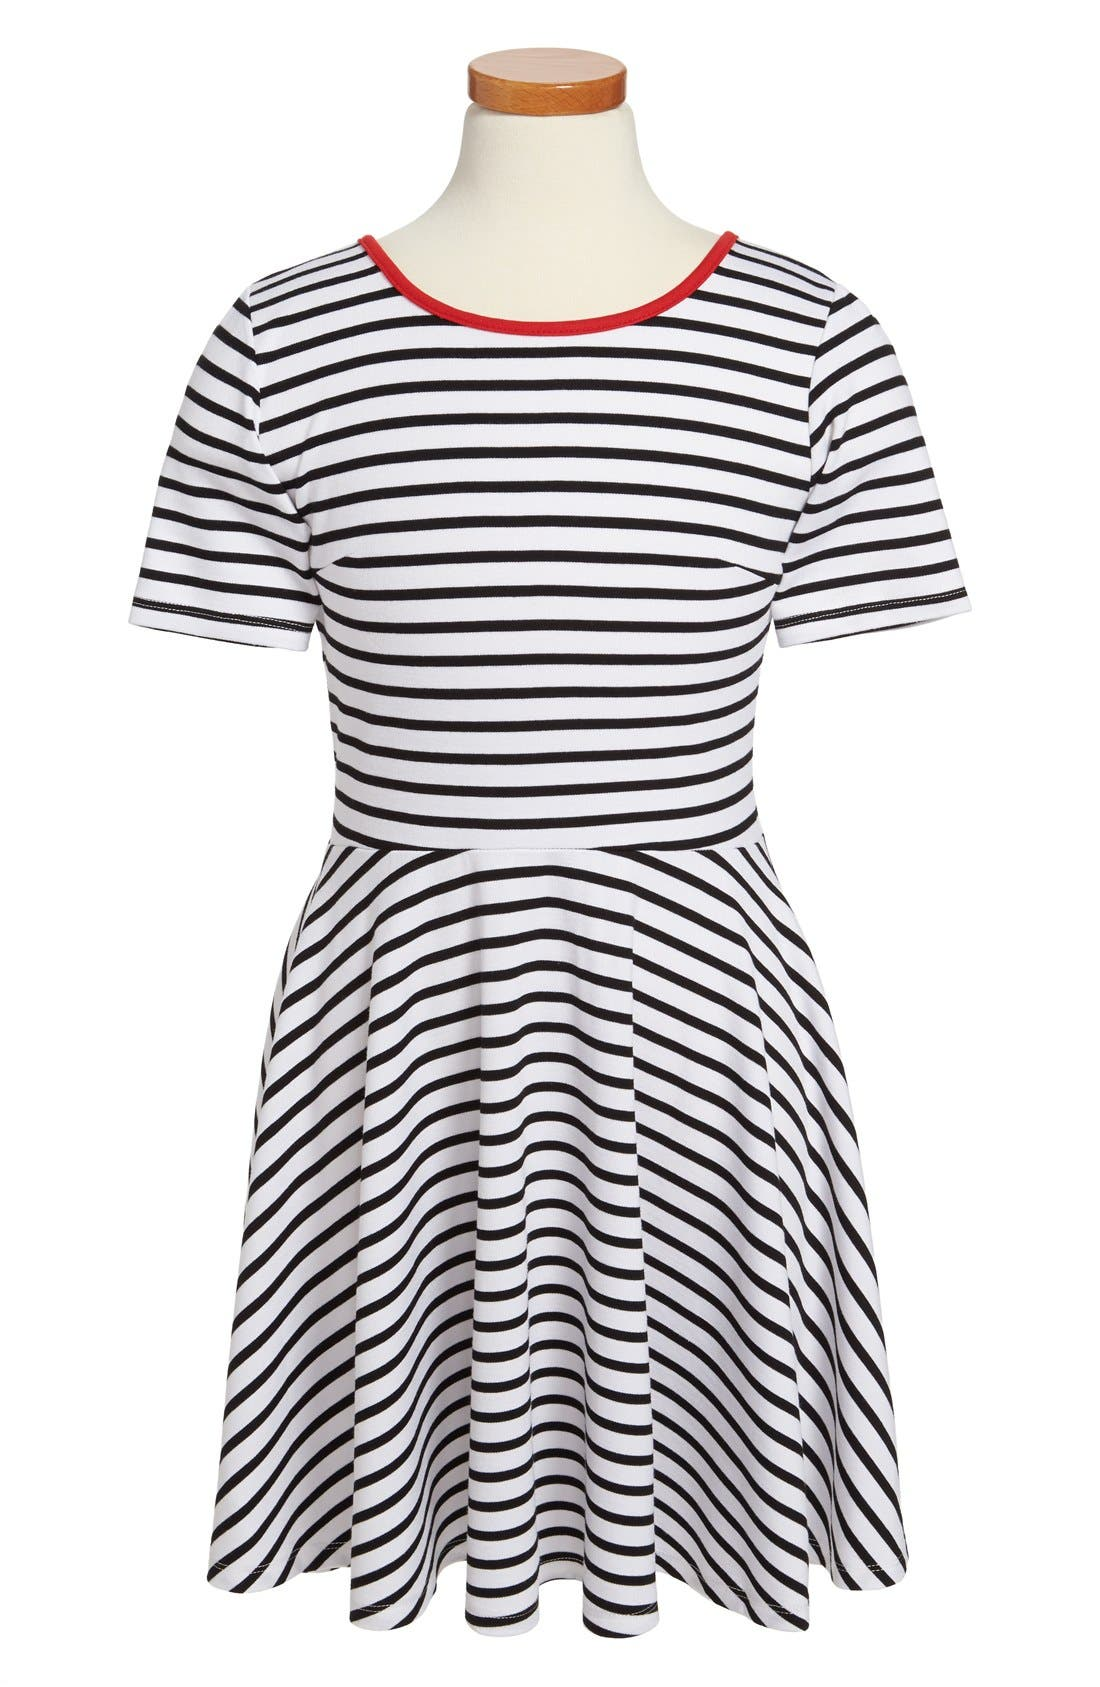 Alternate Image 1 Selected - Miss Behave 'Lacey' Ponte Knit Stripe Skater Dress (Big Girls)